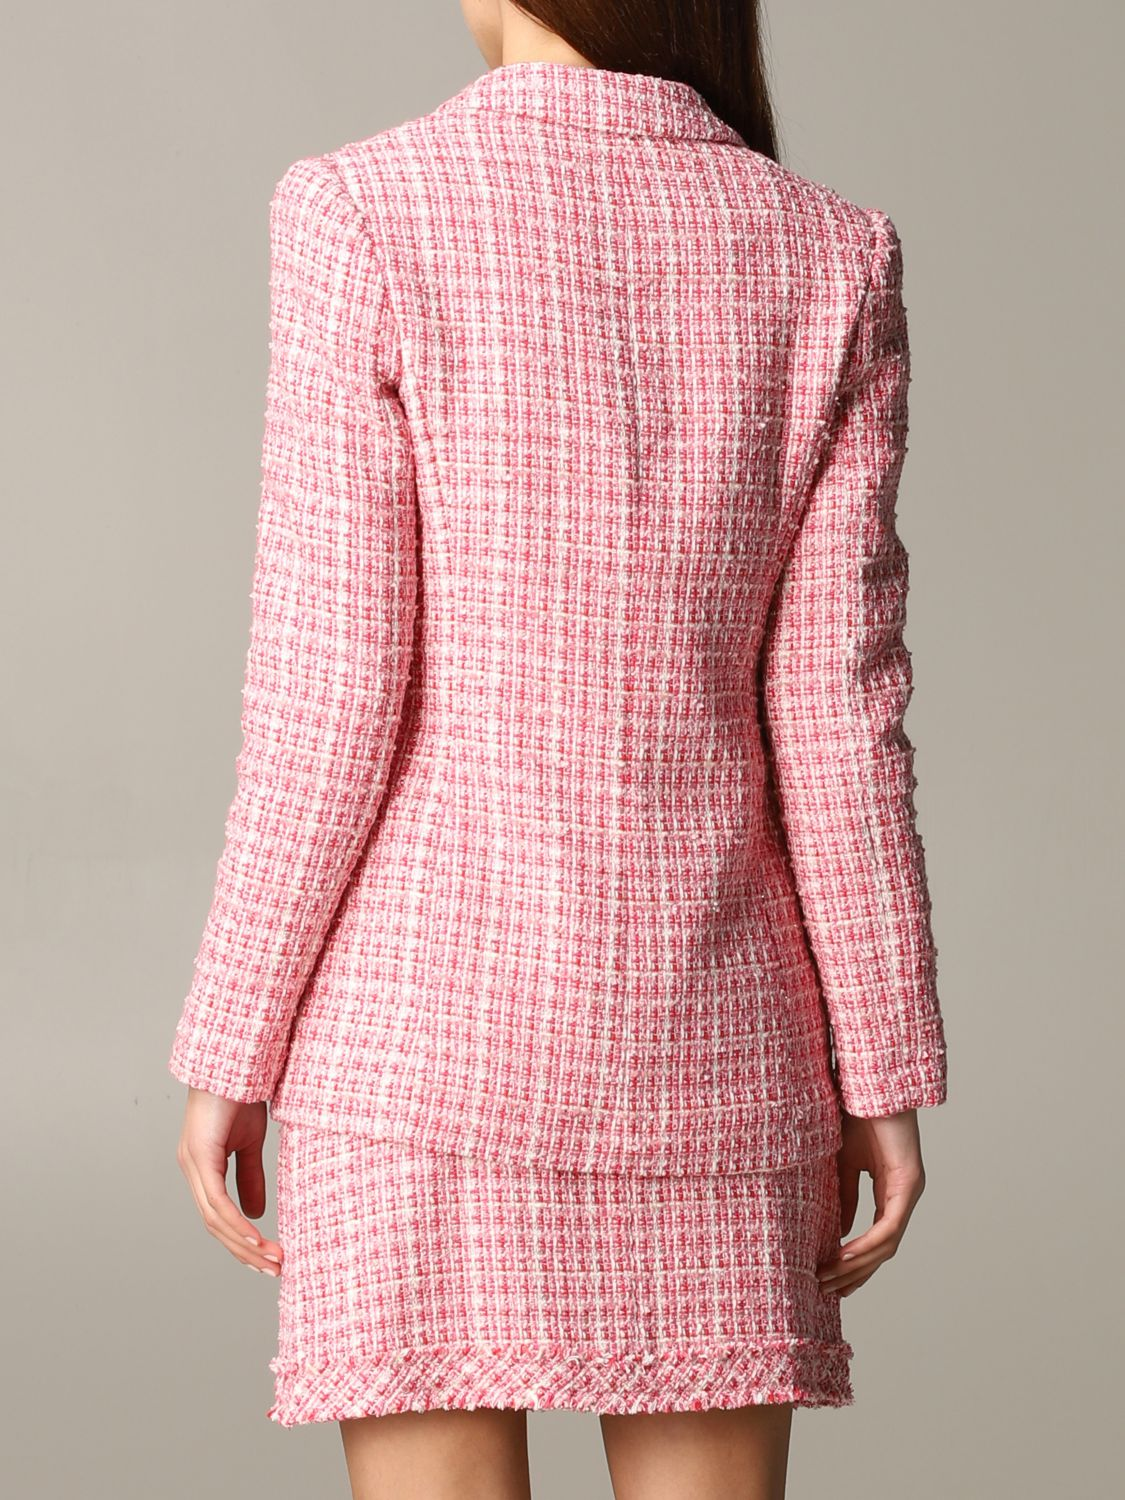 Be Blumarine double-breasted bouclé jacket pink 3